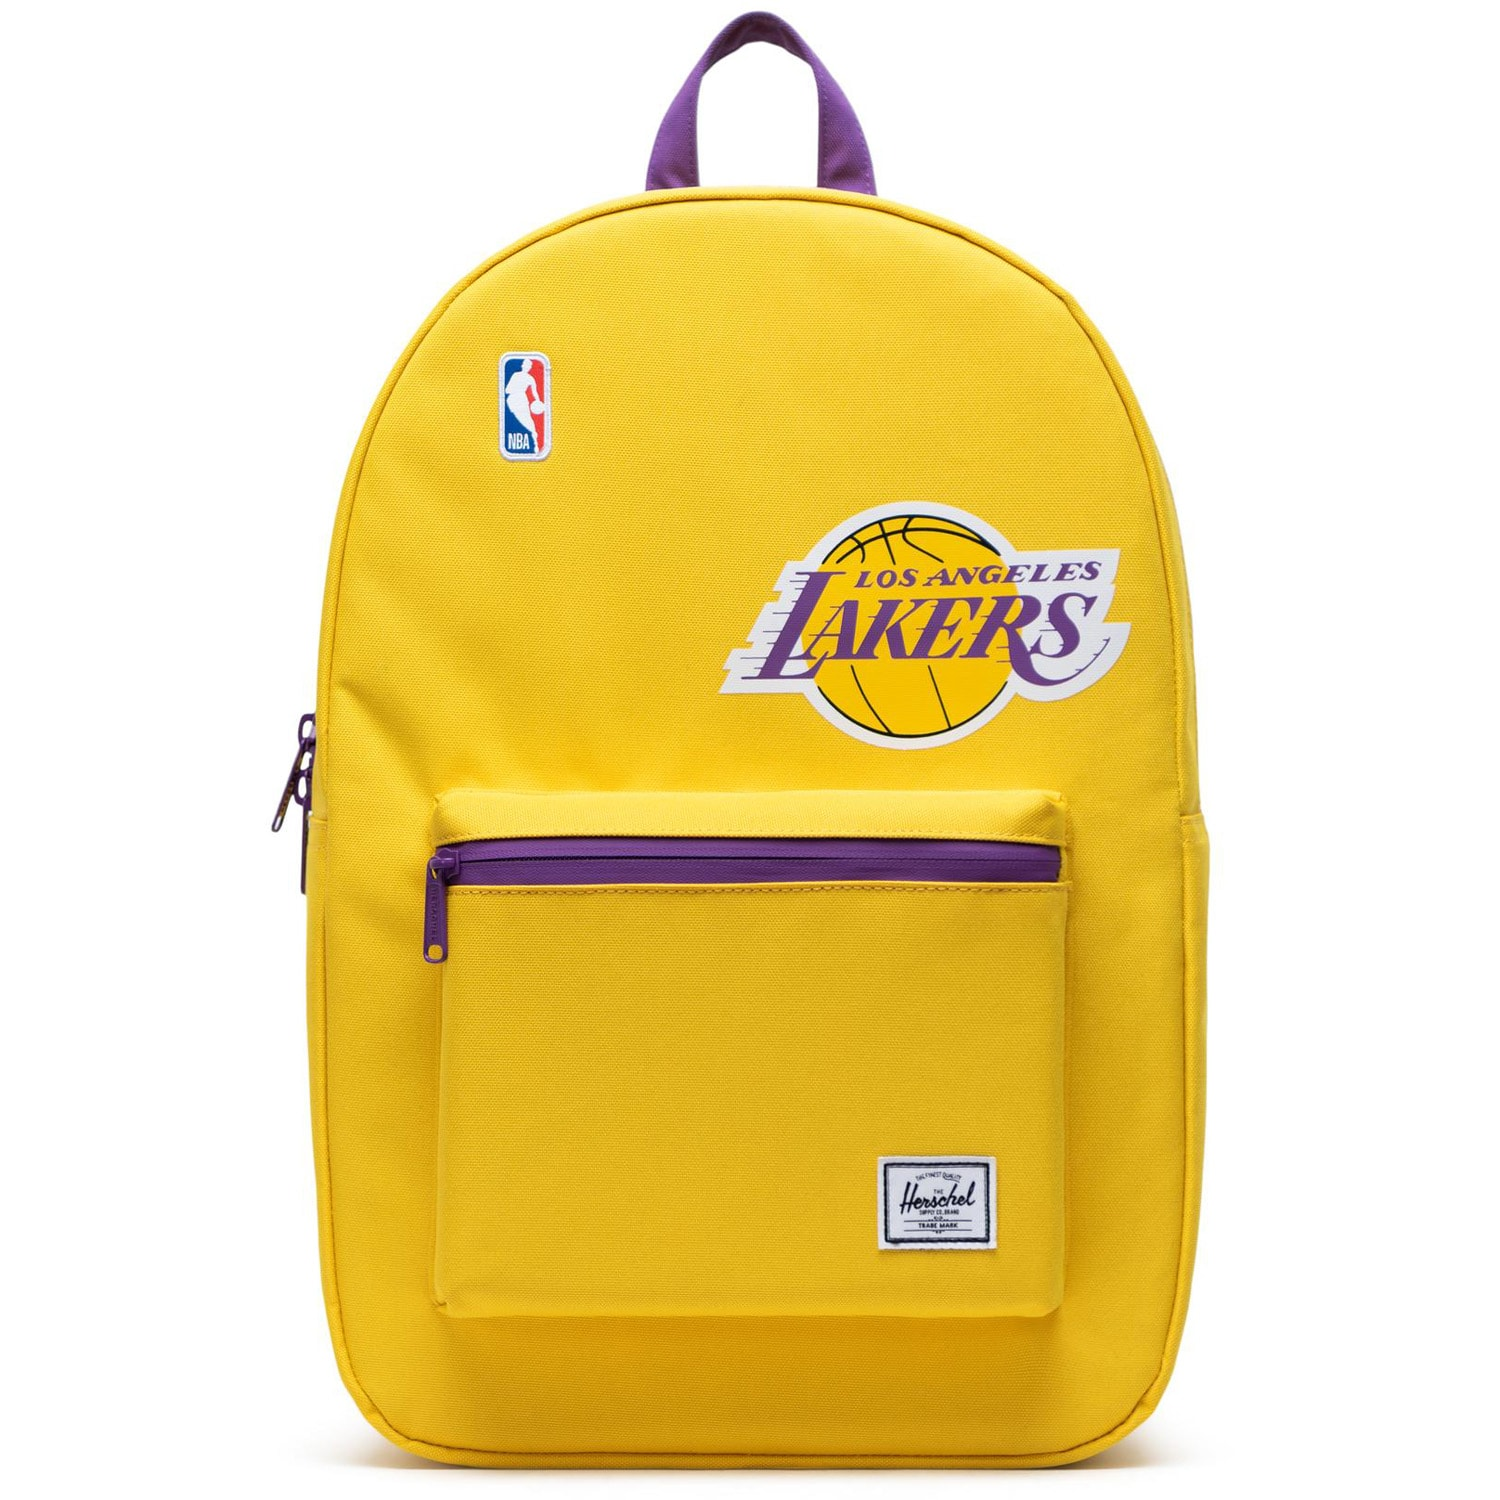 Los Angeles Lakers Herschel Supply Co. Statement Backpack